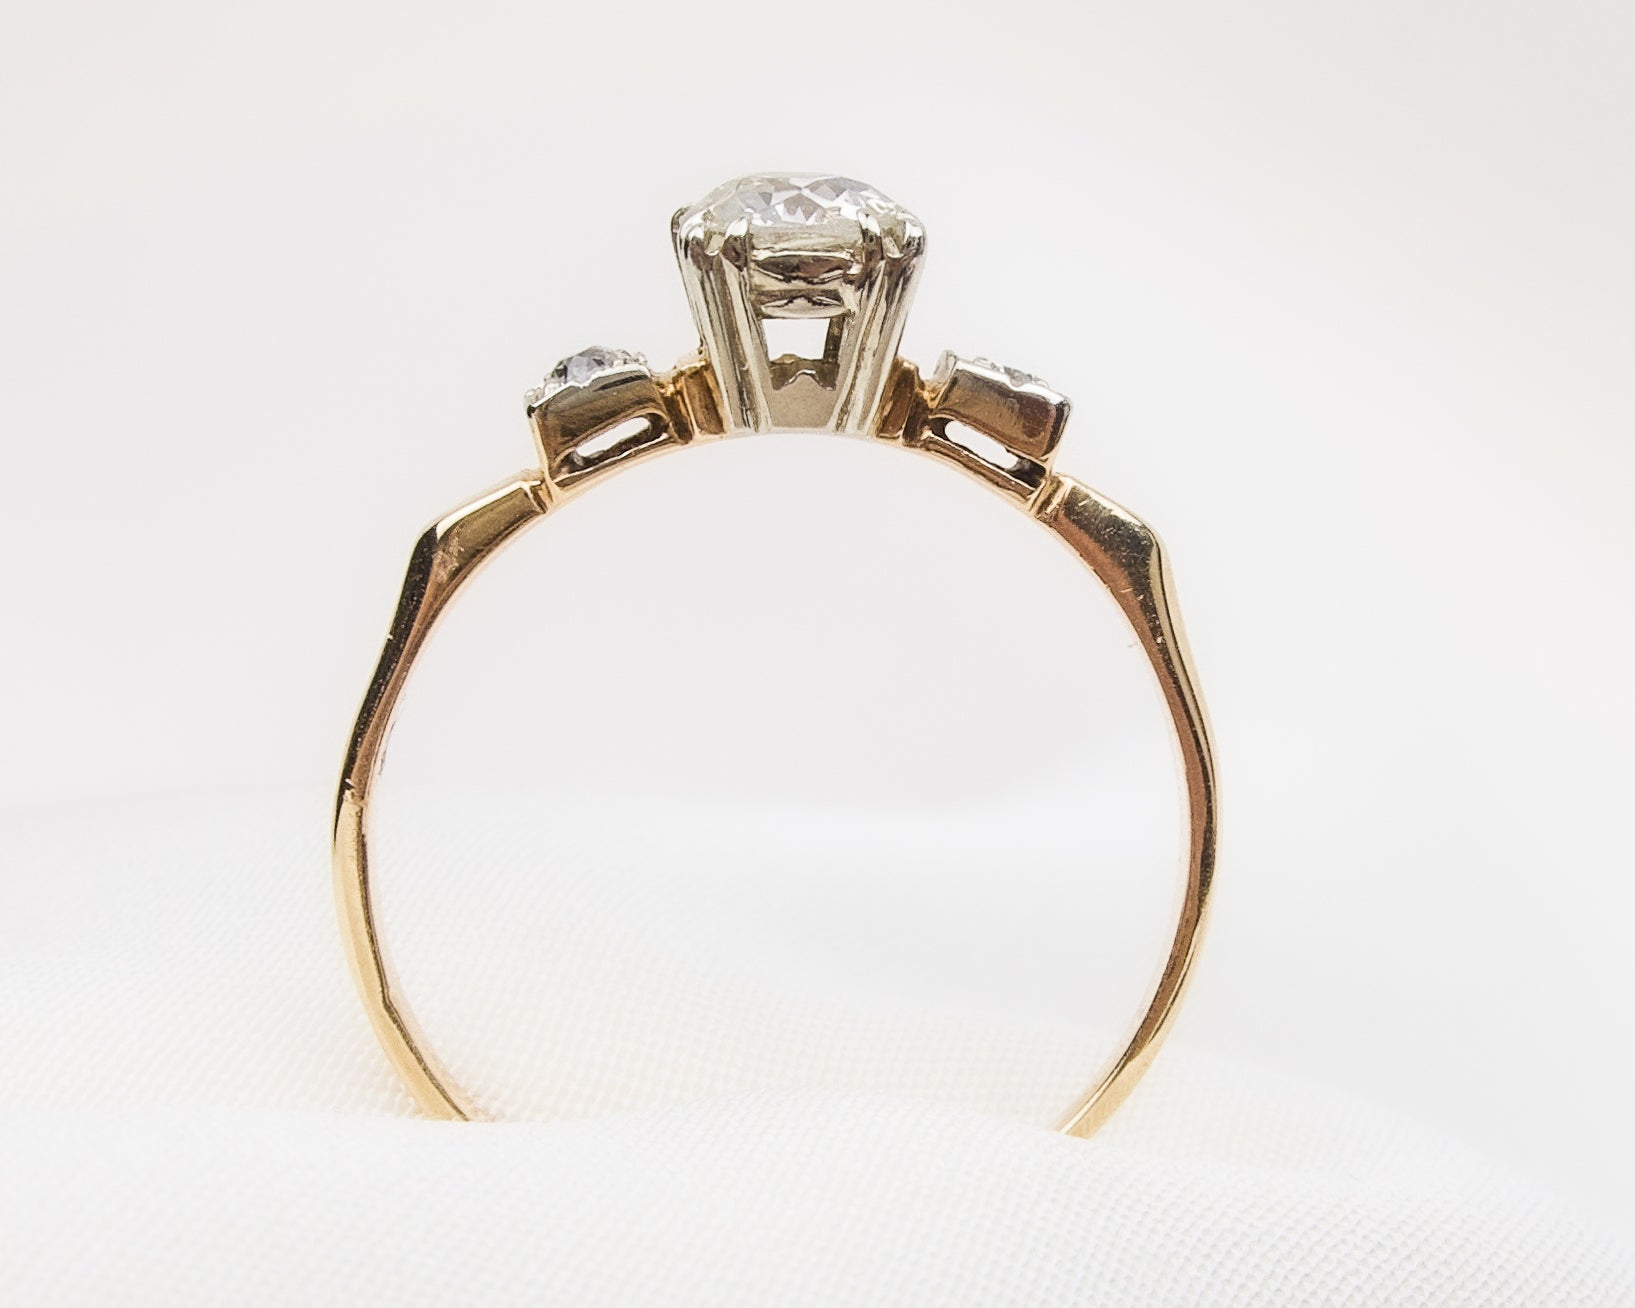 1940s European-Cut Diamond Ring